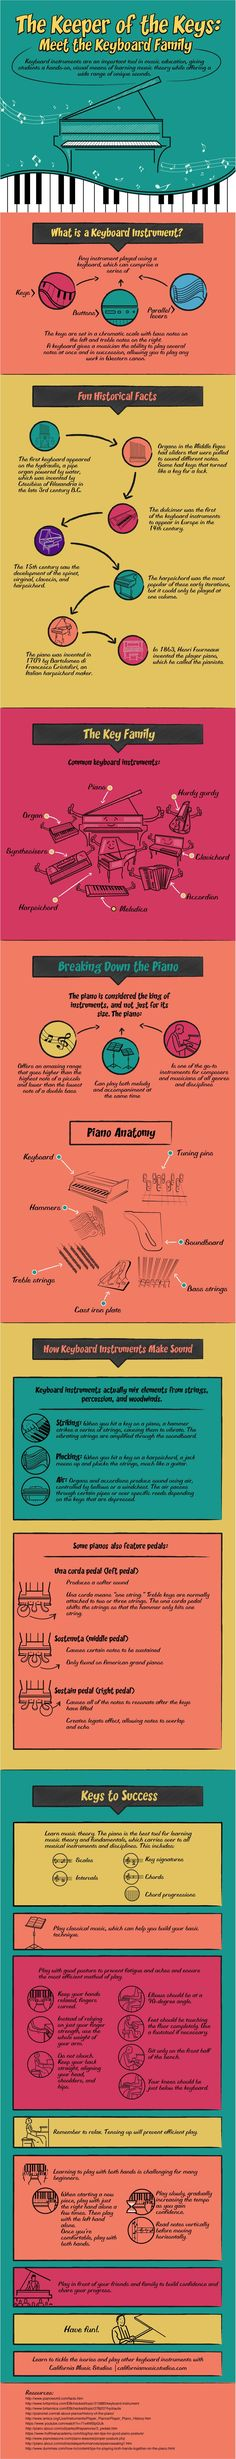 The Keeper of the Keys: Meet the Keyboard Family infographic #pianoteaching